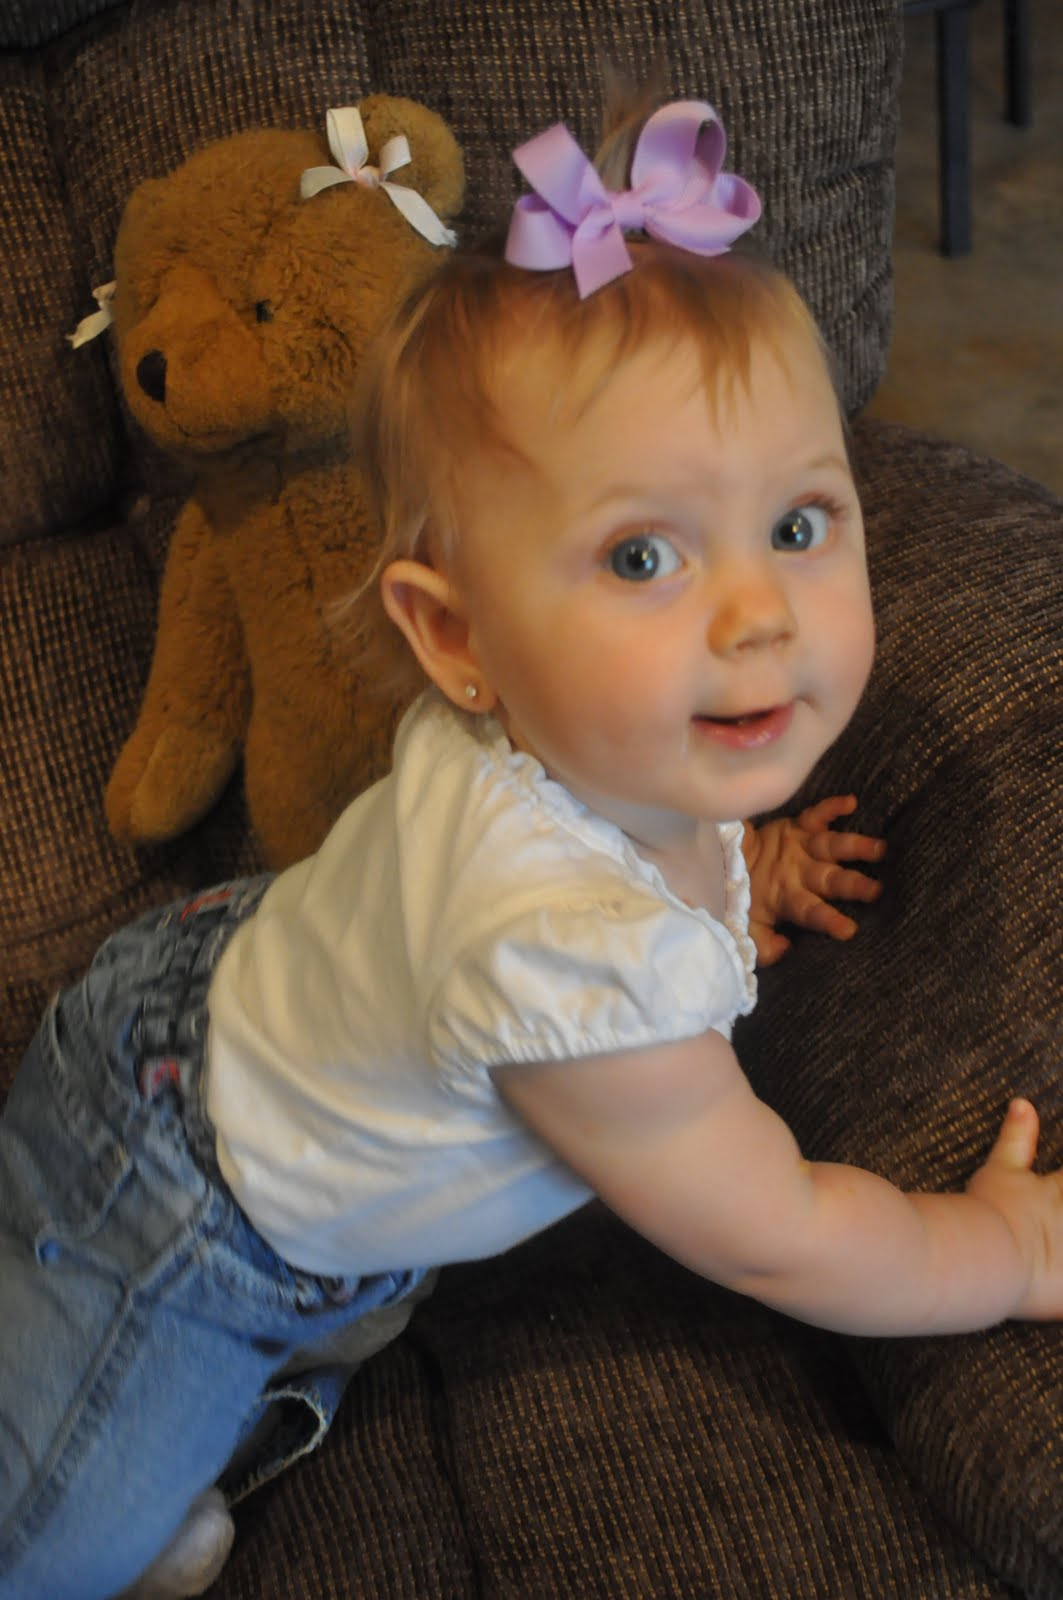 heidbrink happenings: 10 Months...a little late